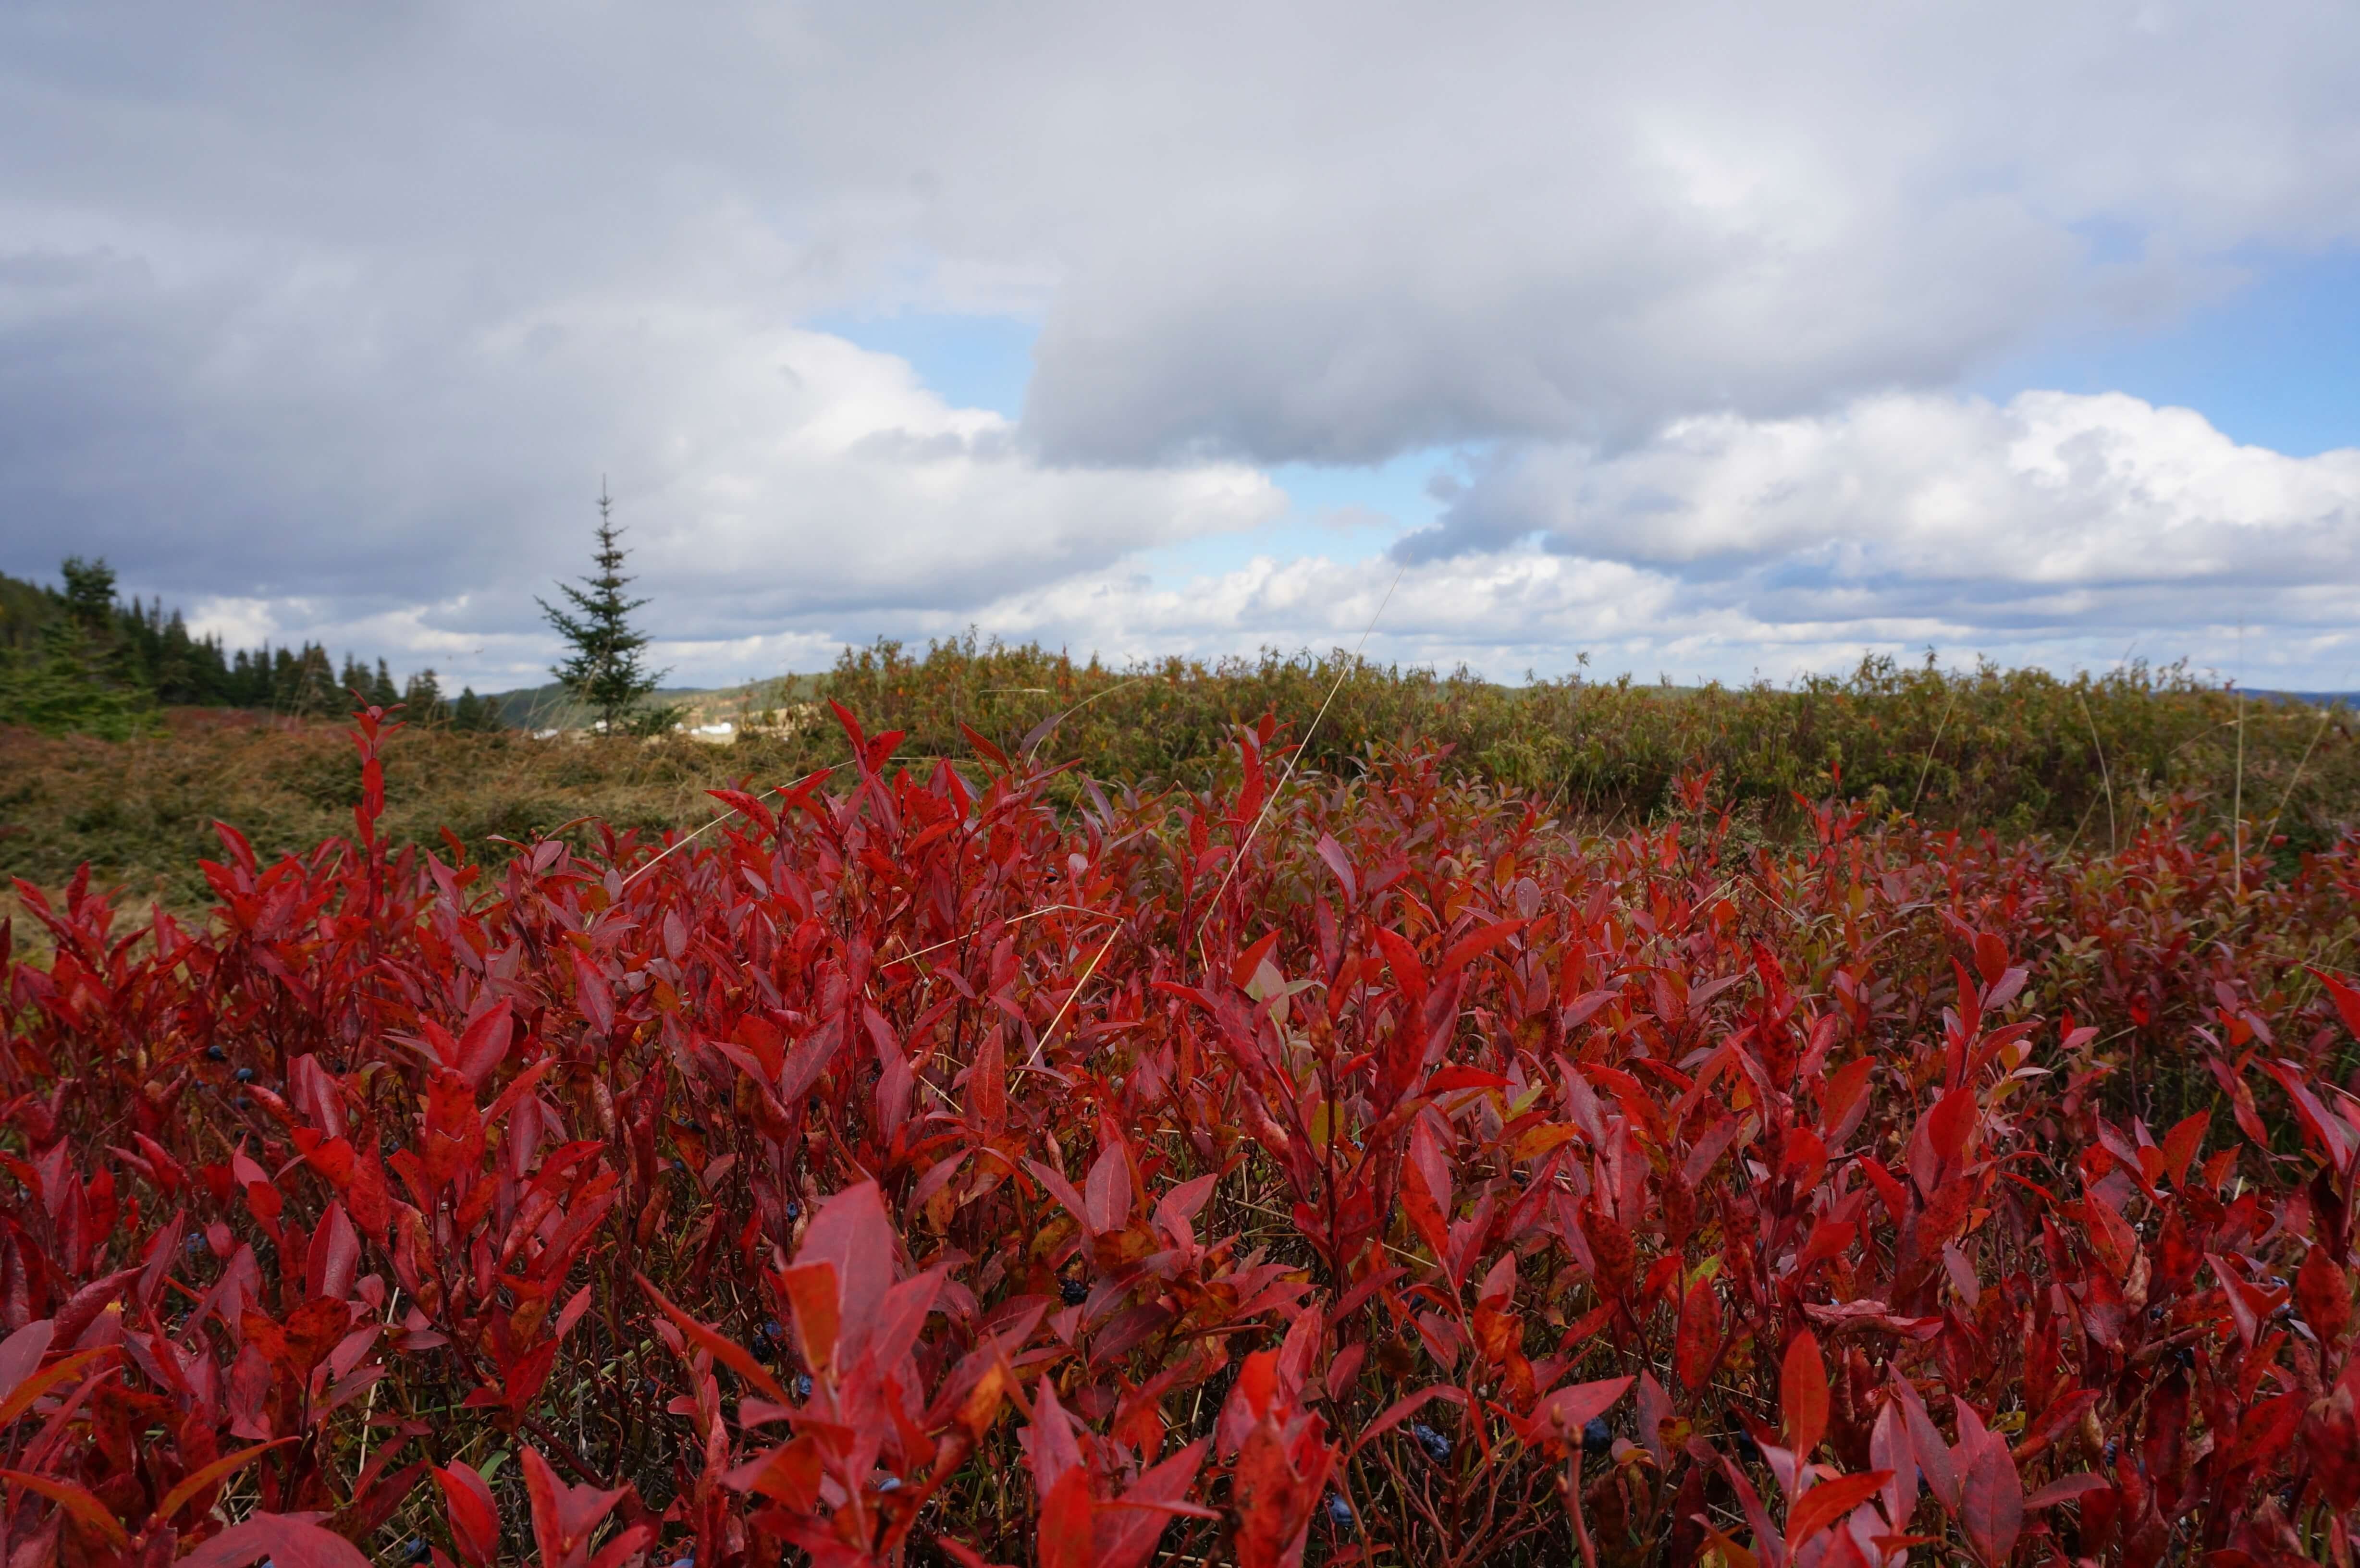 Red blueberry bushes